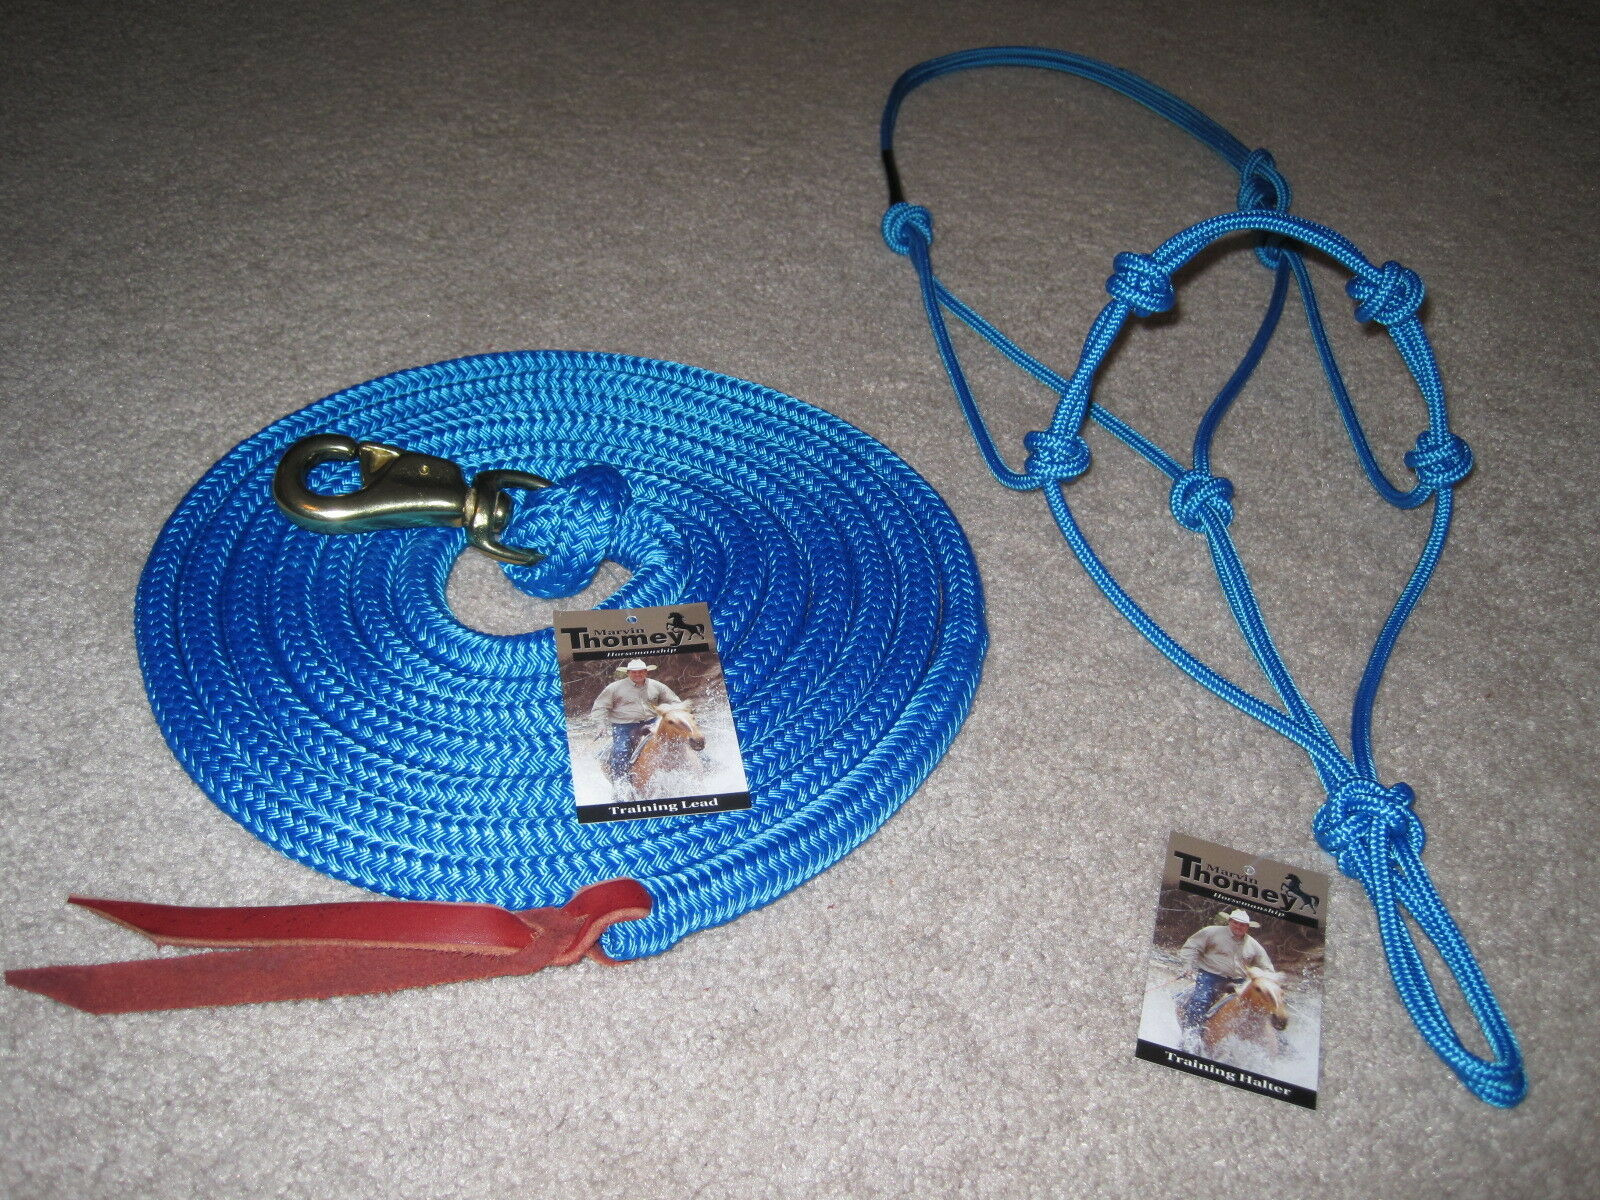 THOMEY NATURAL HORSE TRAINING HALTER & LEAD ROPE  blueE